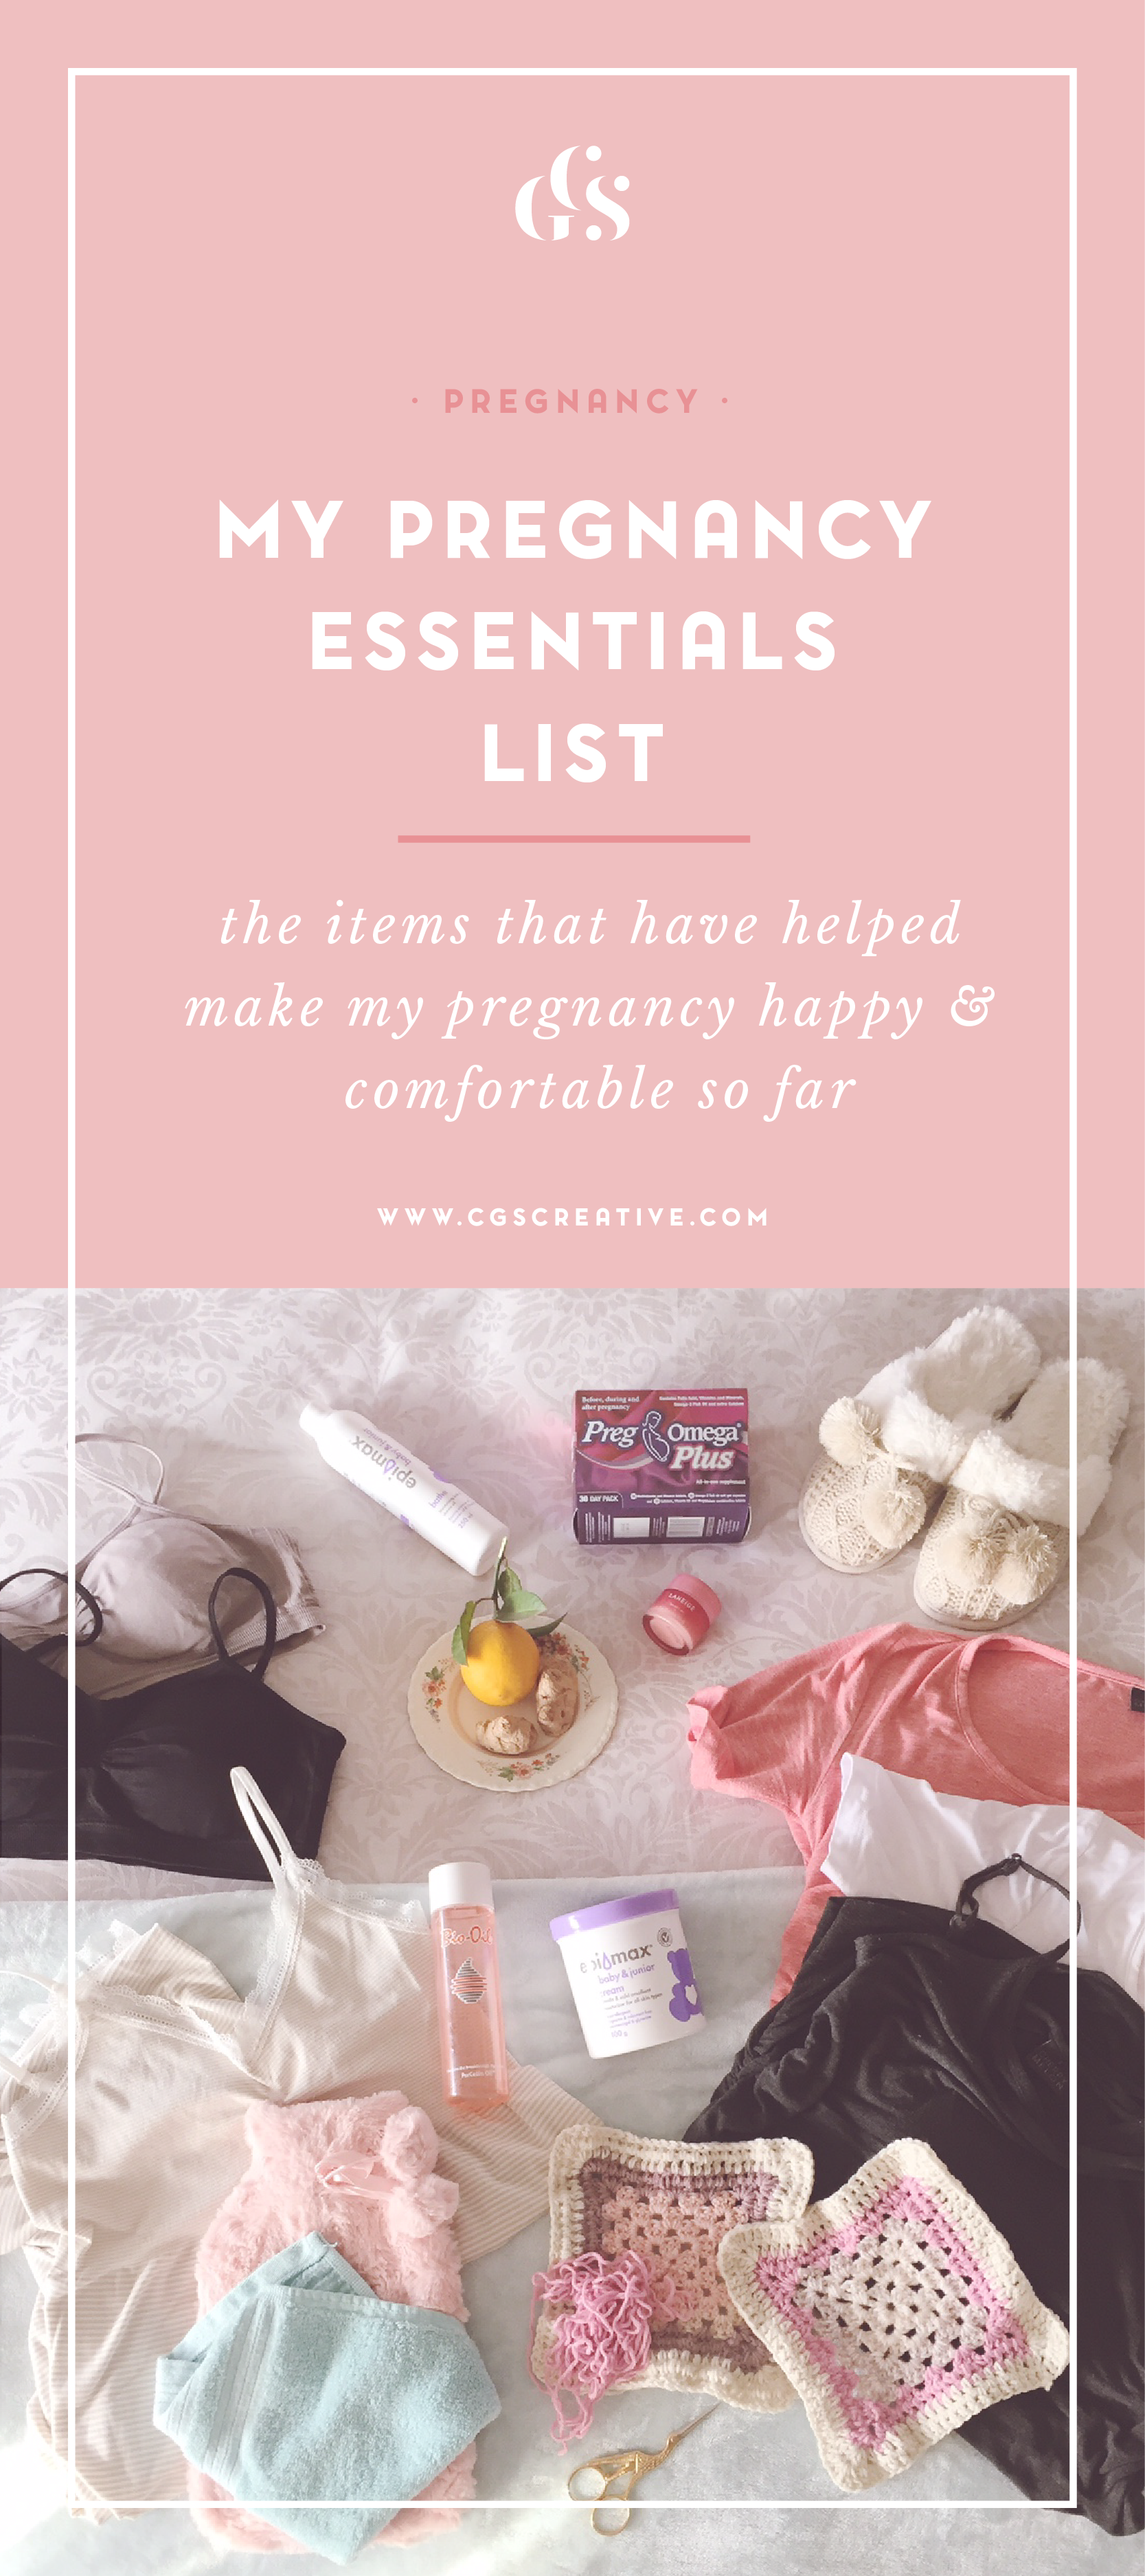 My Pregnancy Essentials List - Items that have made my pregnancy happy & comfortable CityGirlSearching_Artboard 4.png